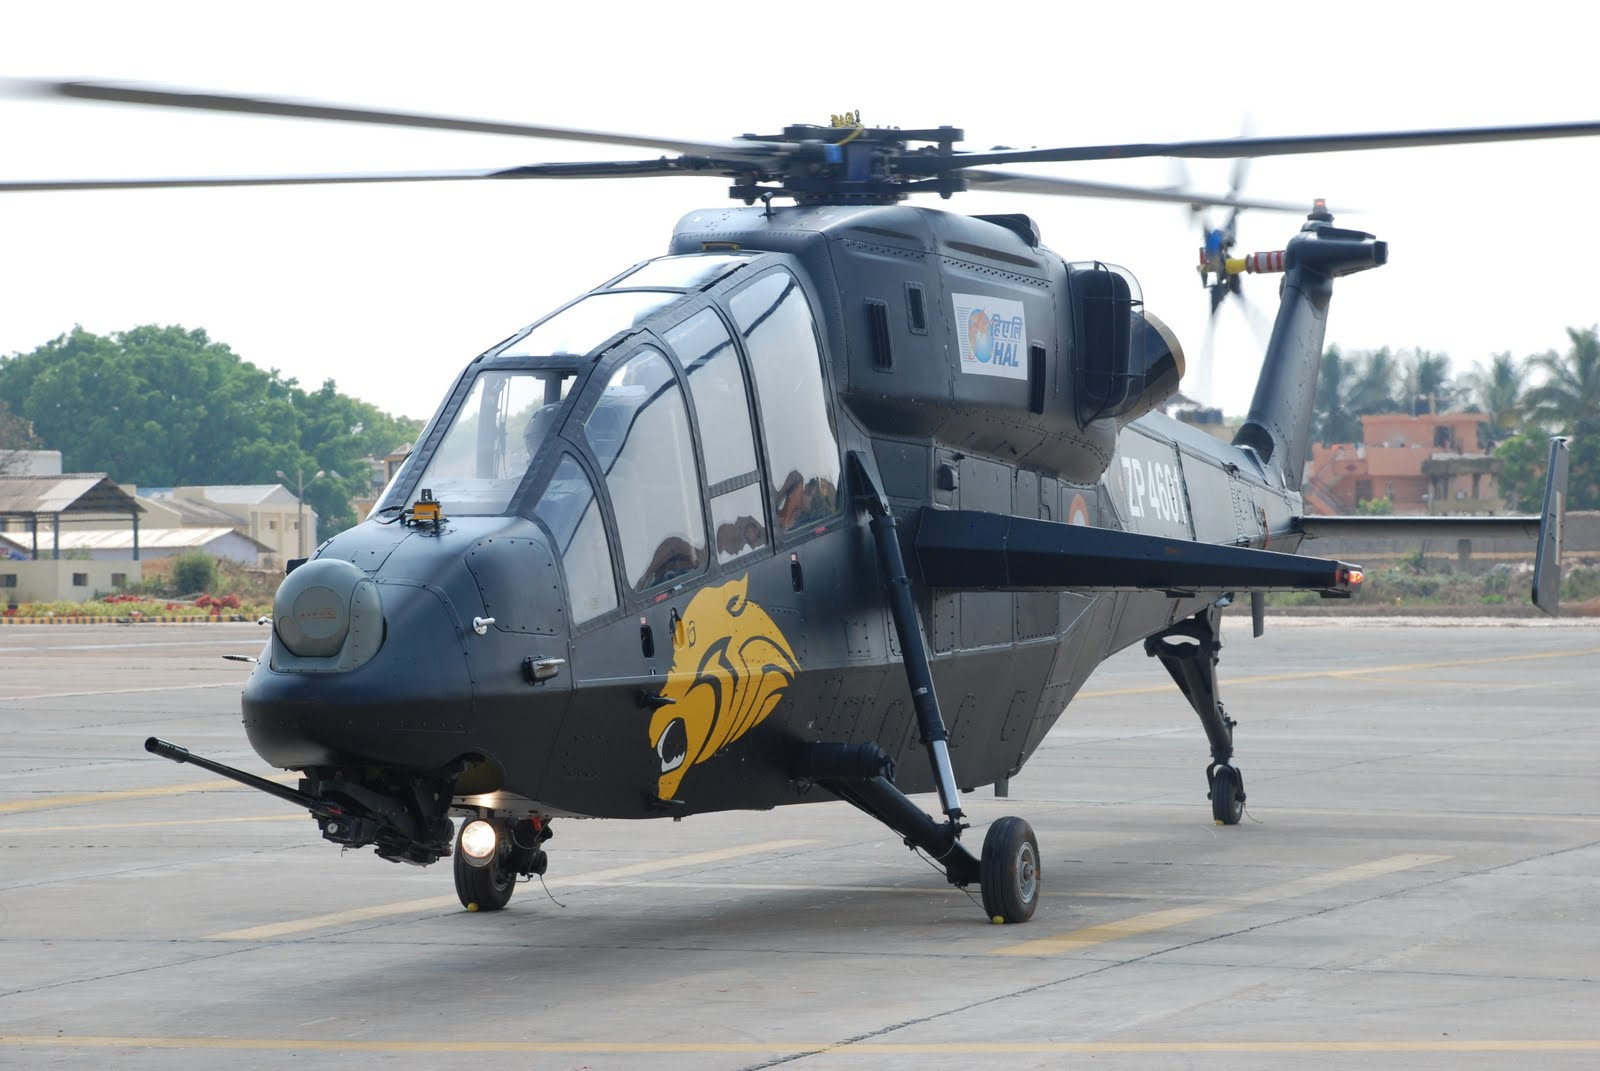 LCH and other Helicopters Discussion Thread - Page 8